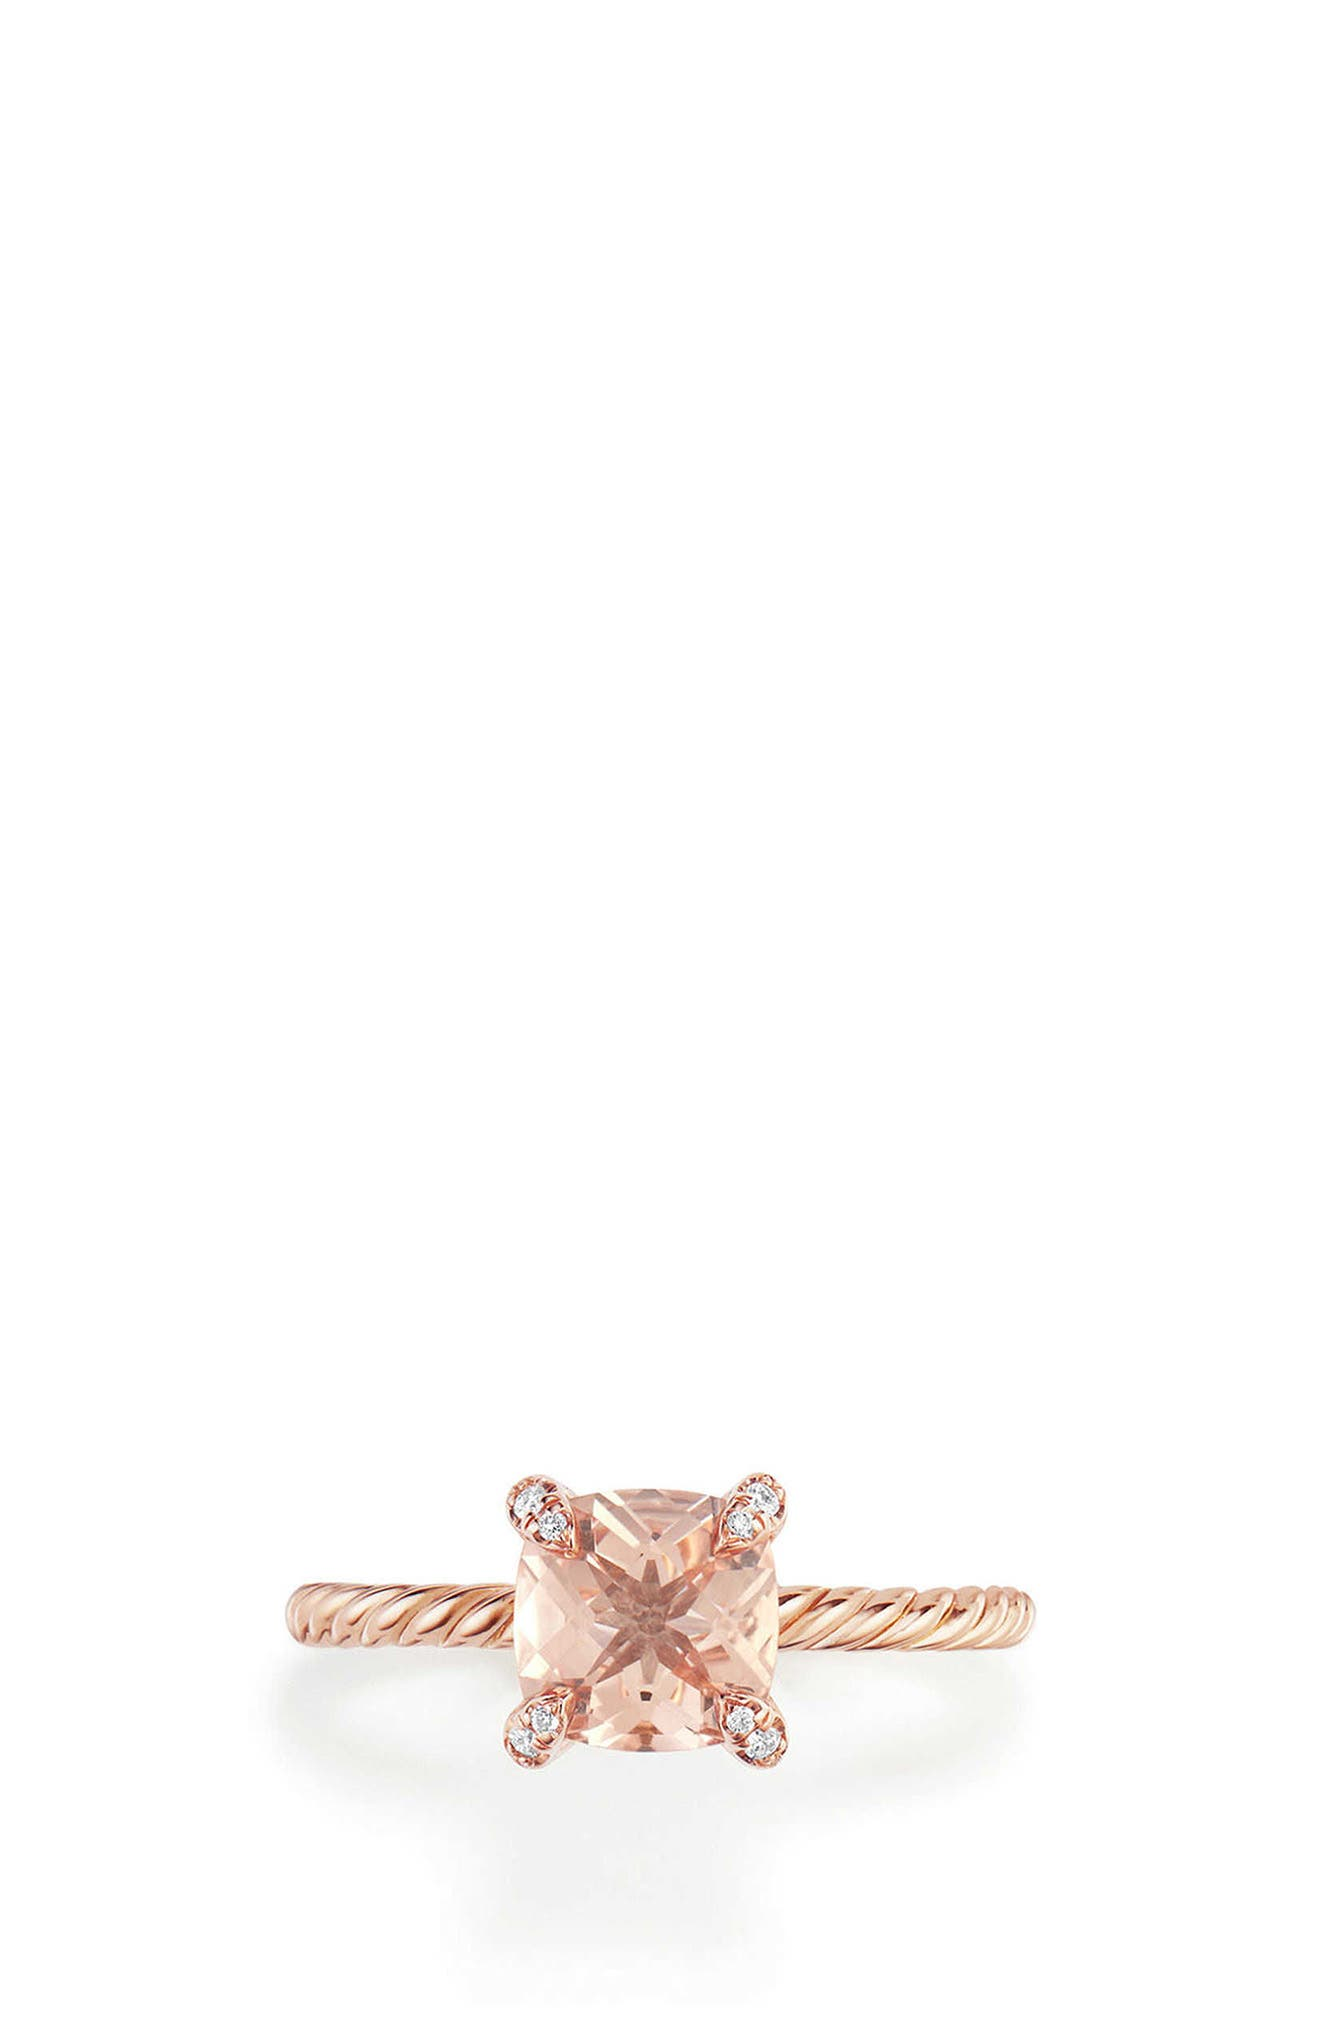 Chatelaine Ring with Morganite and Diamonds in 18K Rose Gold,                             Main thumbnail 1, color,                             ROSE GOLD/ DIAMOND/ MORGANITE